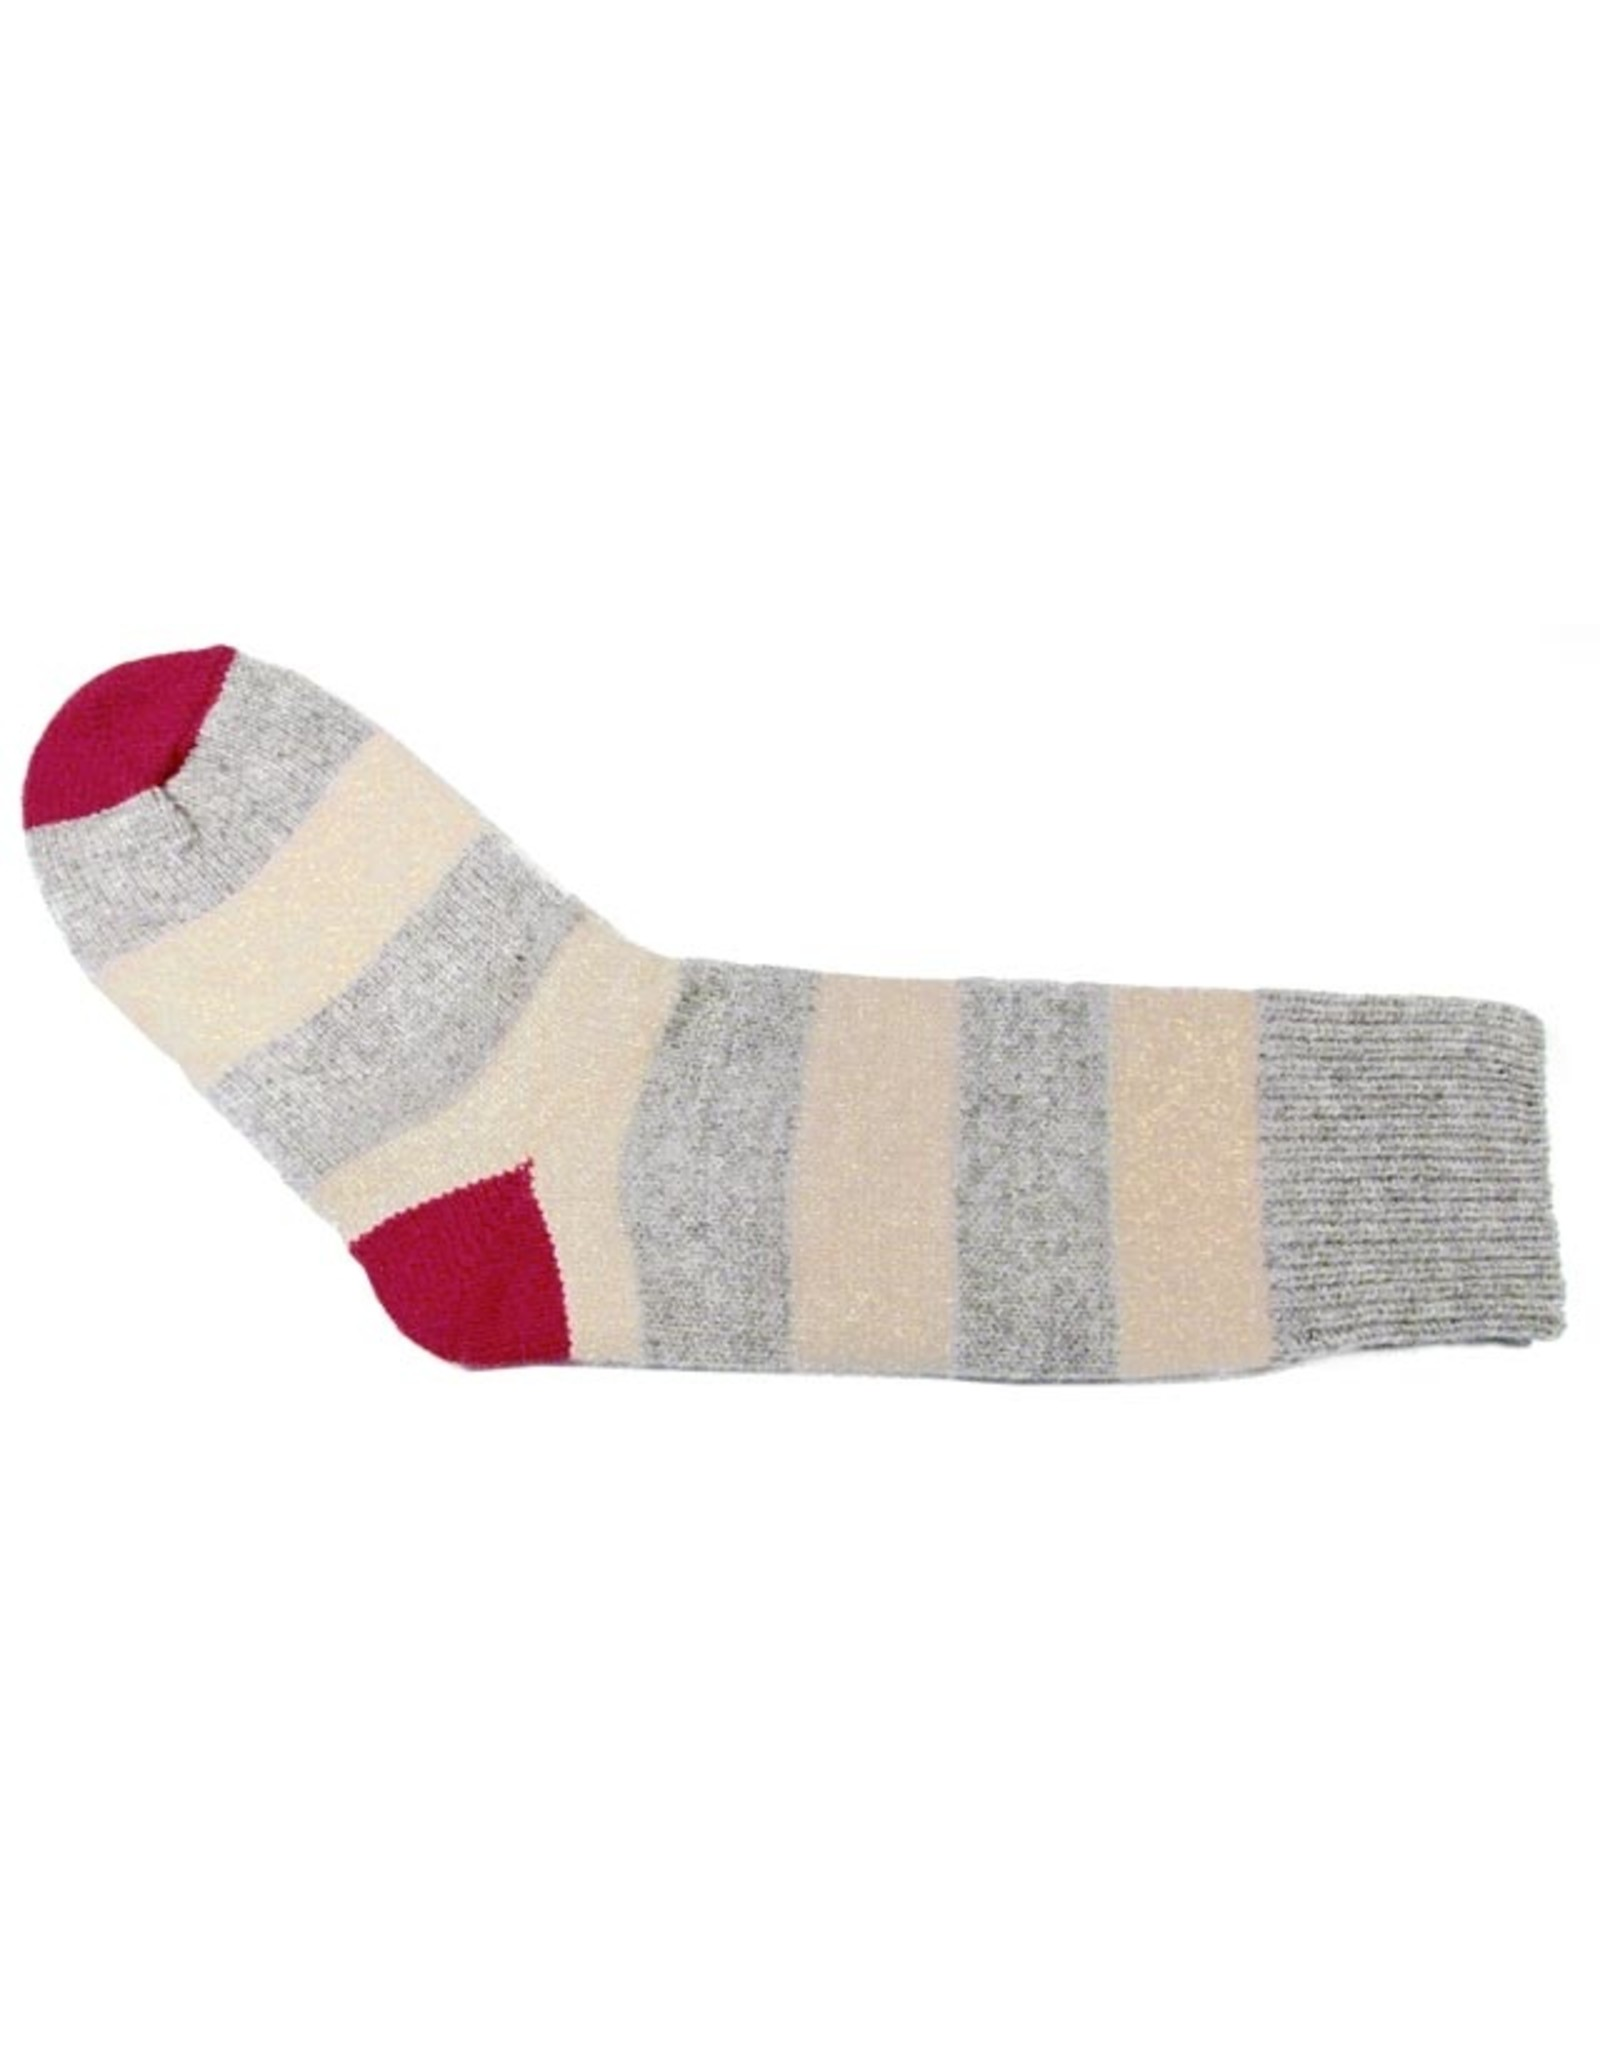 Bas de laine & mot coquin - Socks The Kind  (Grey/Beige and Red)